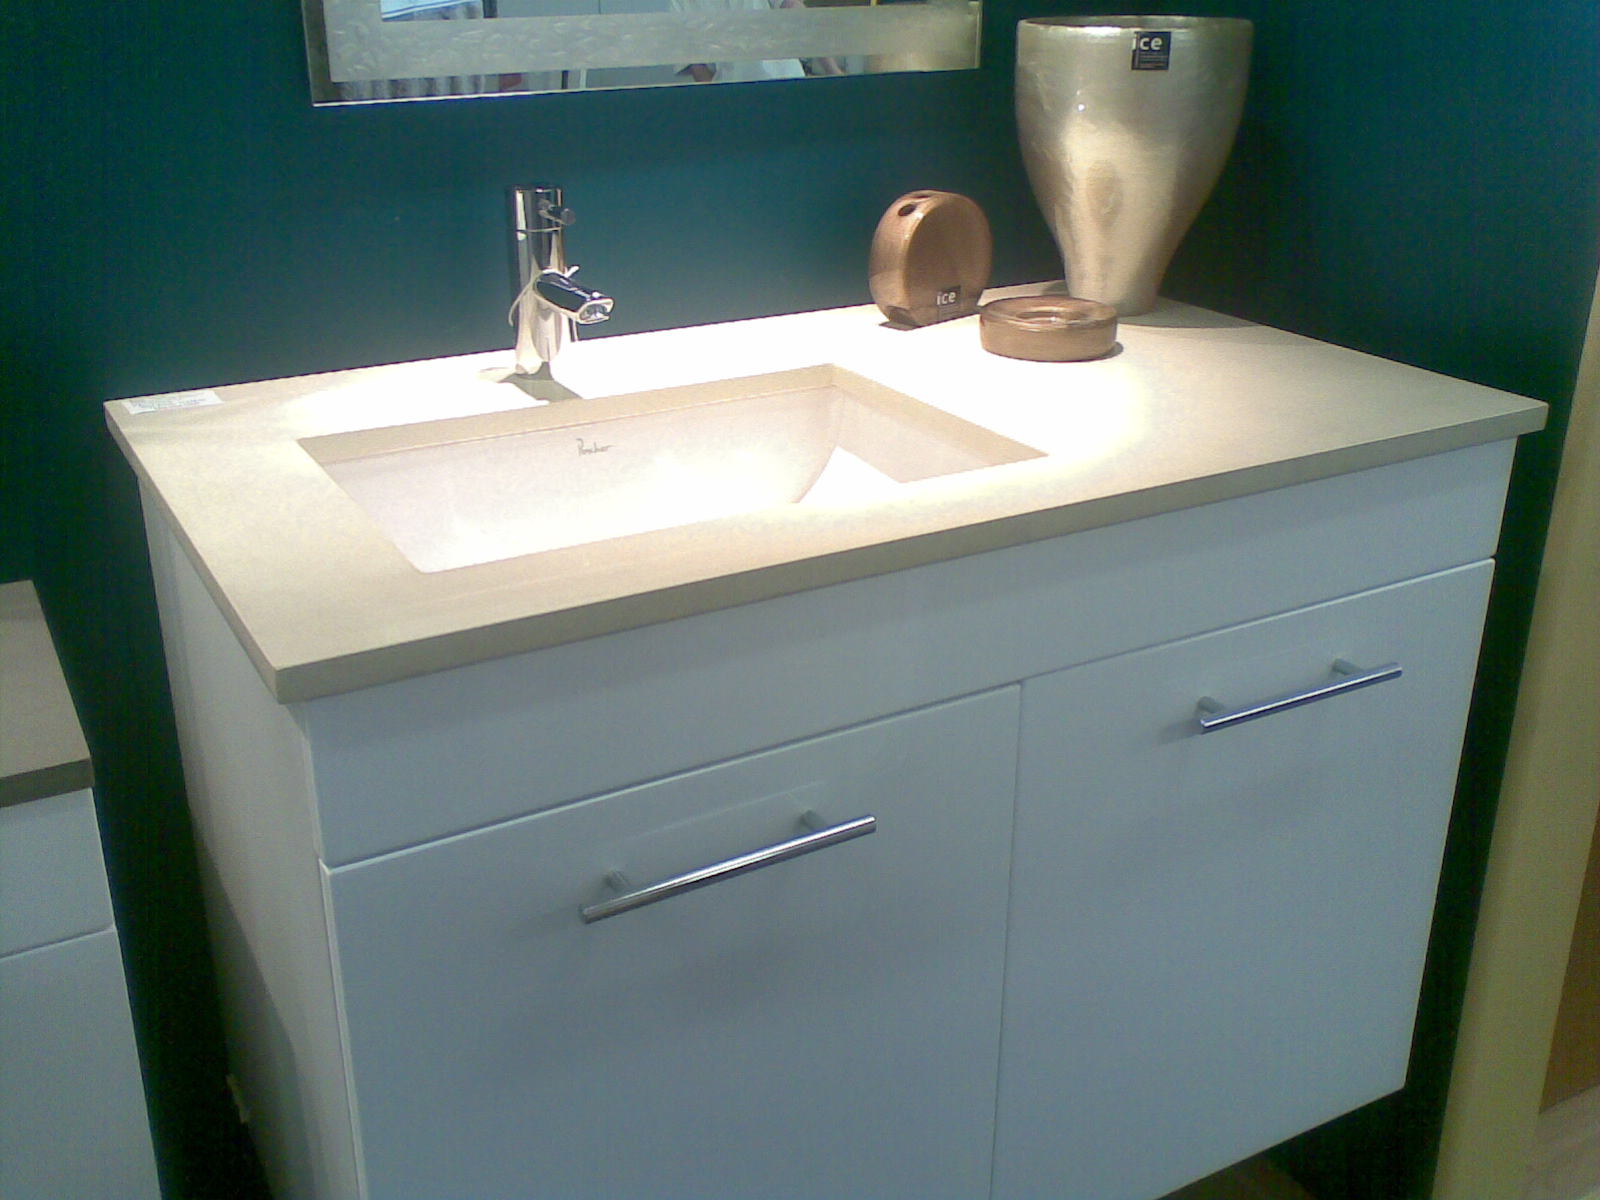 Pros and cons of wall-hung vanity units